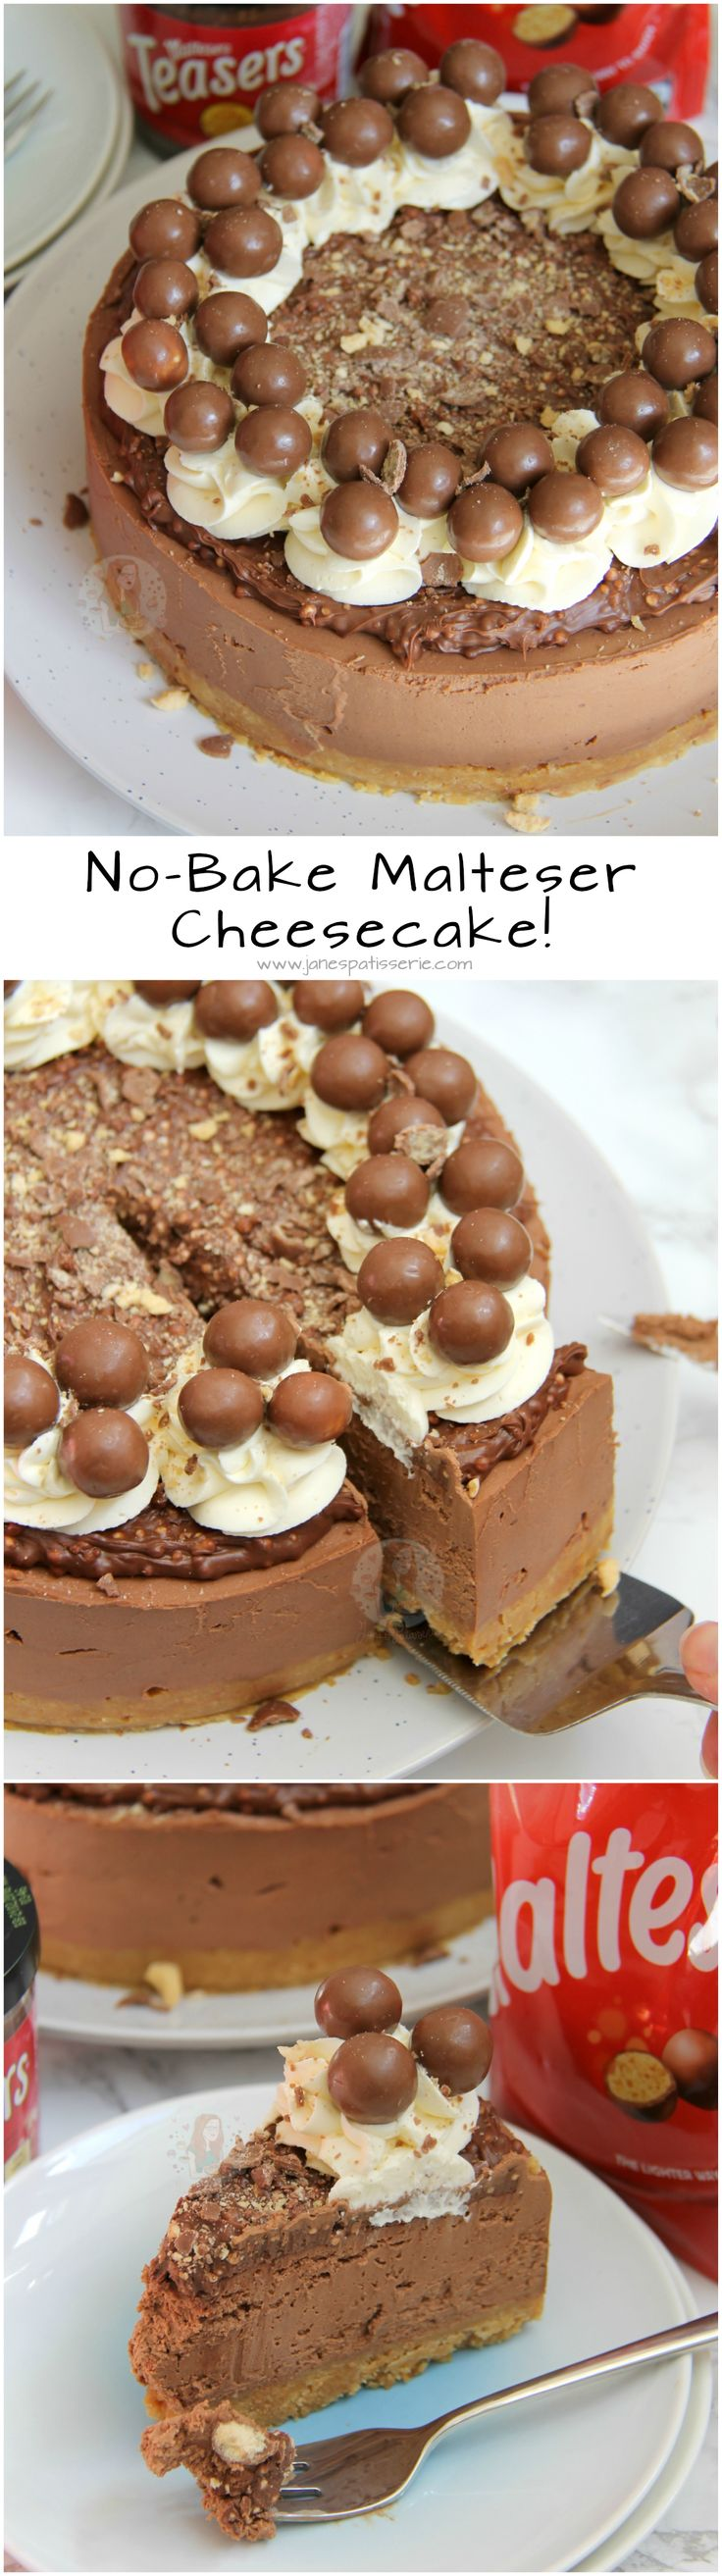 No-Bake Malteser Cheesecake! ❤️ Delicious & Chocolatey Malteser Cheesecake – Malt Biscuit Base, Chocolate Malt Cheesecake, Malteser Spread, Sweetened Cream, and Maltesers!